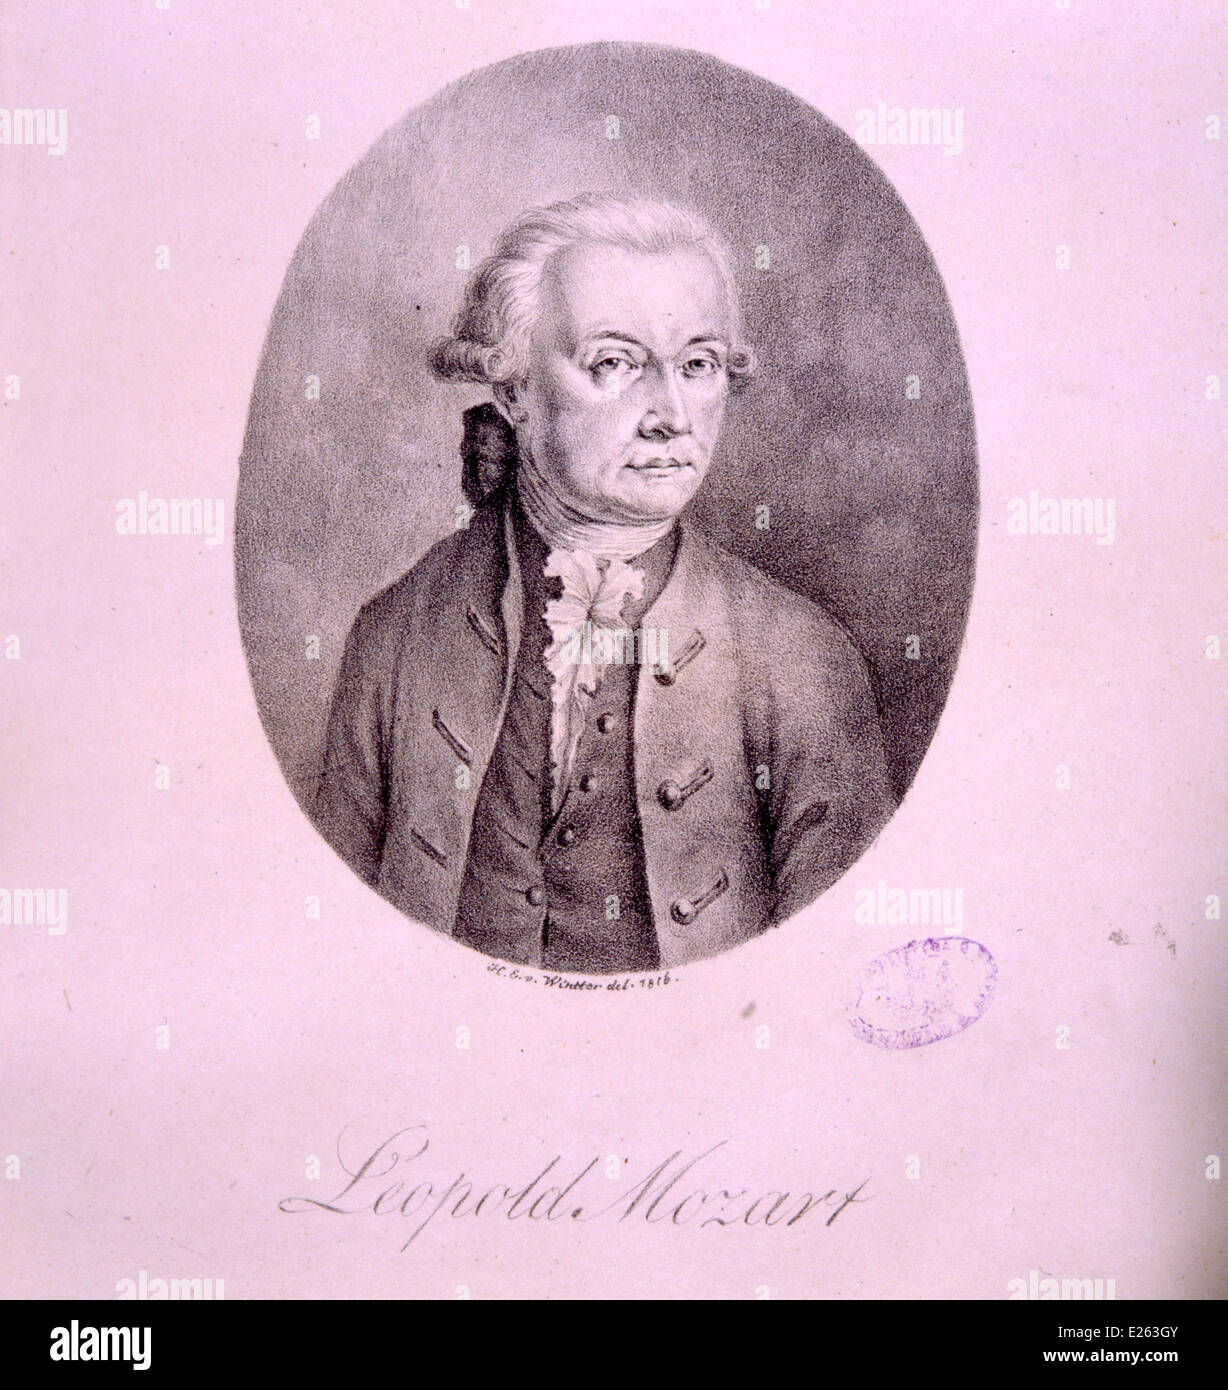 leopold mozart,lithography of Heinrich Eduard von Wintter,1816,National Academy of St Cecilia Stock Photo